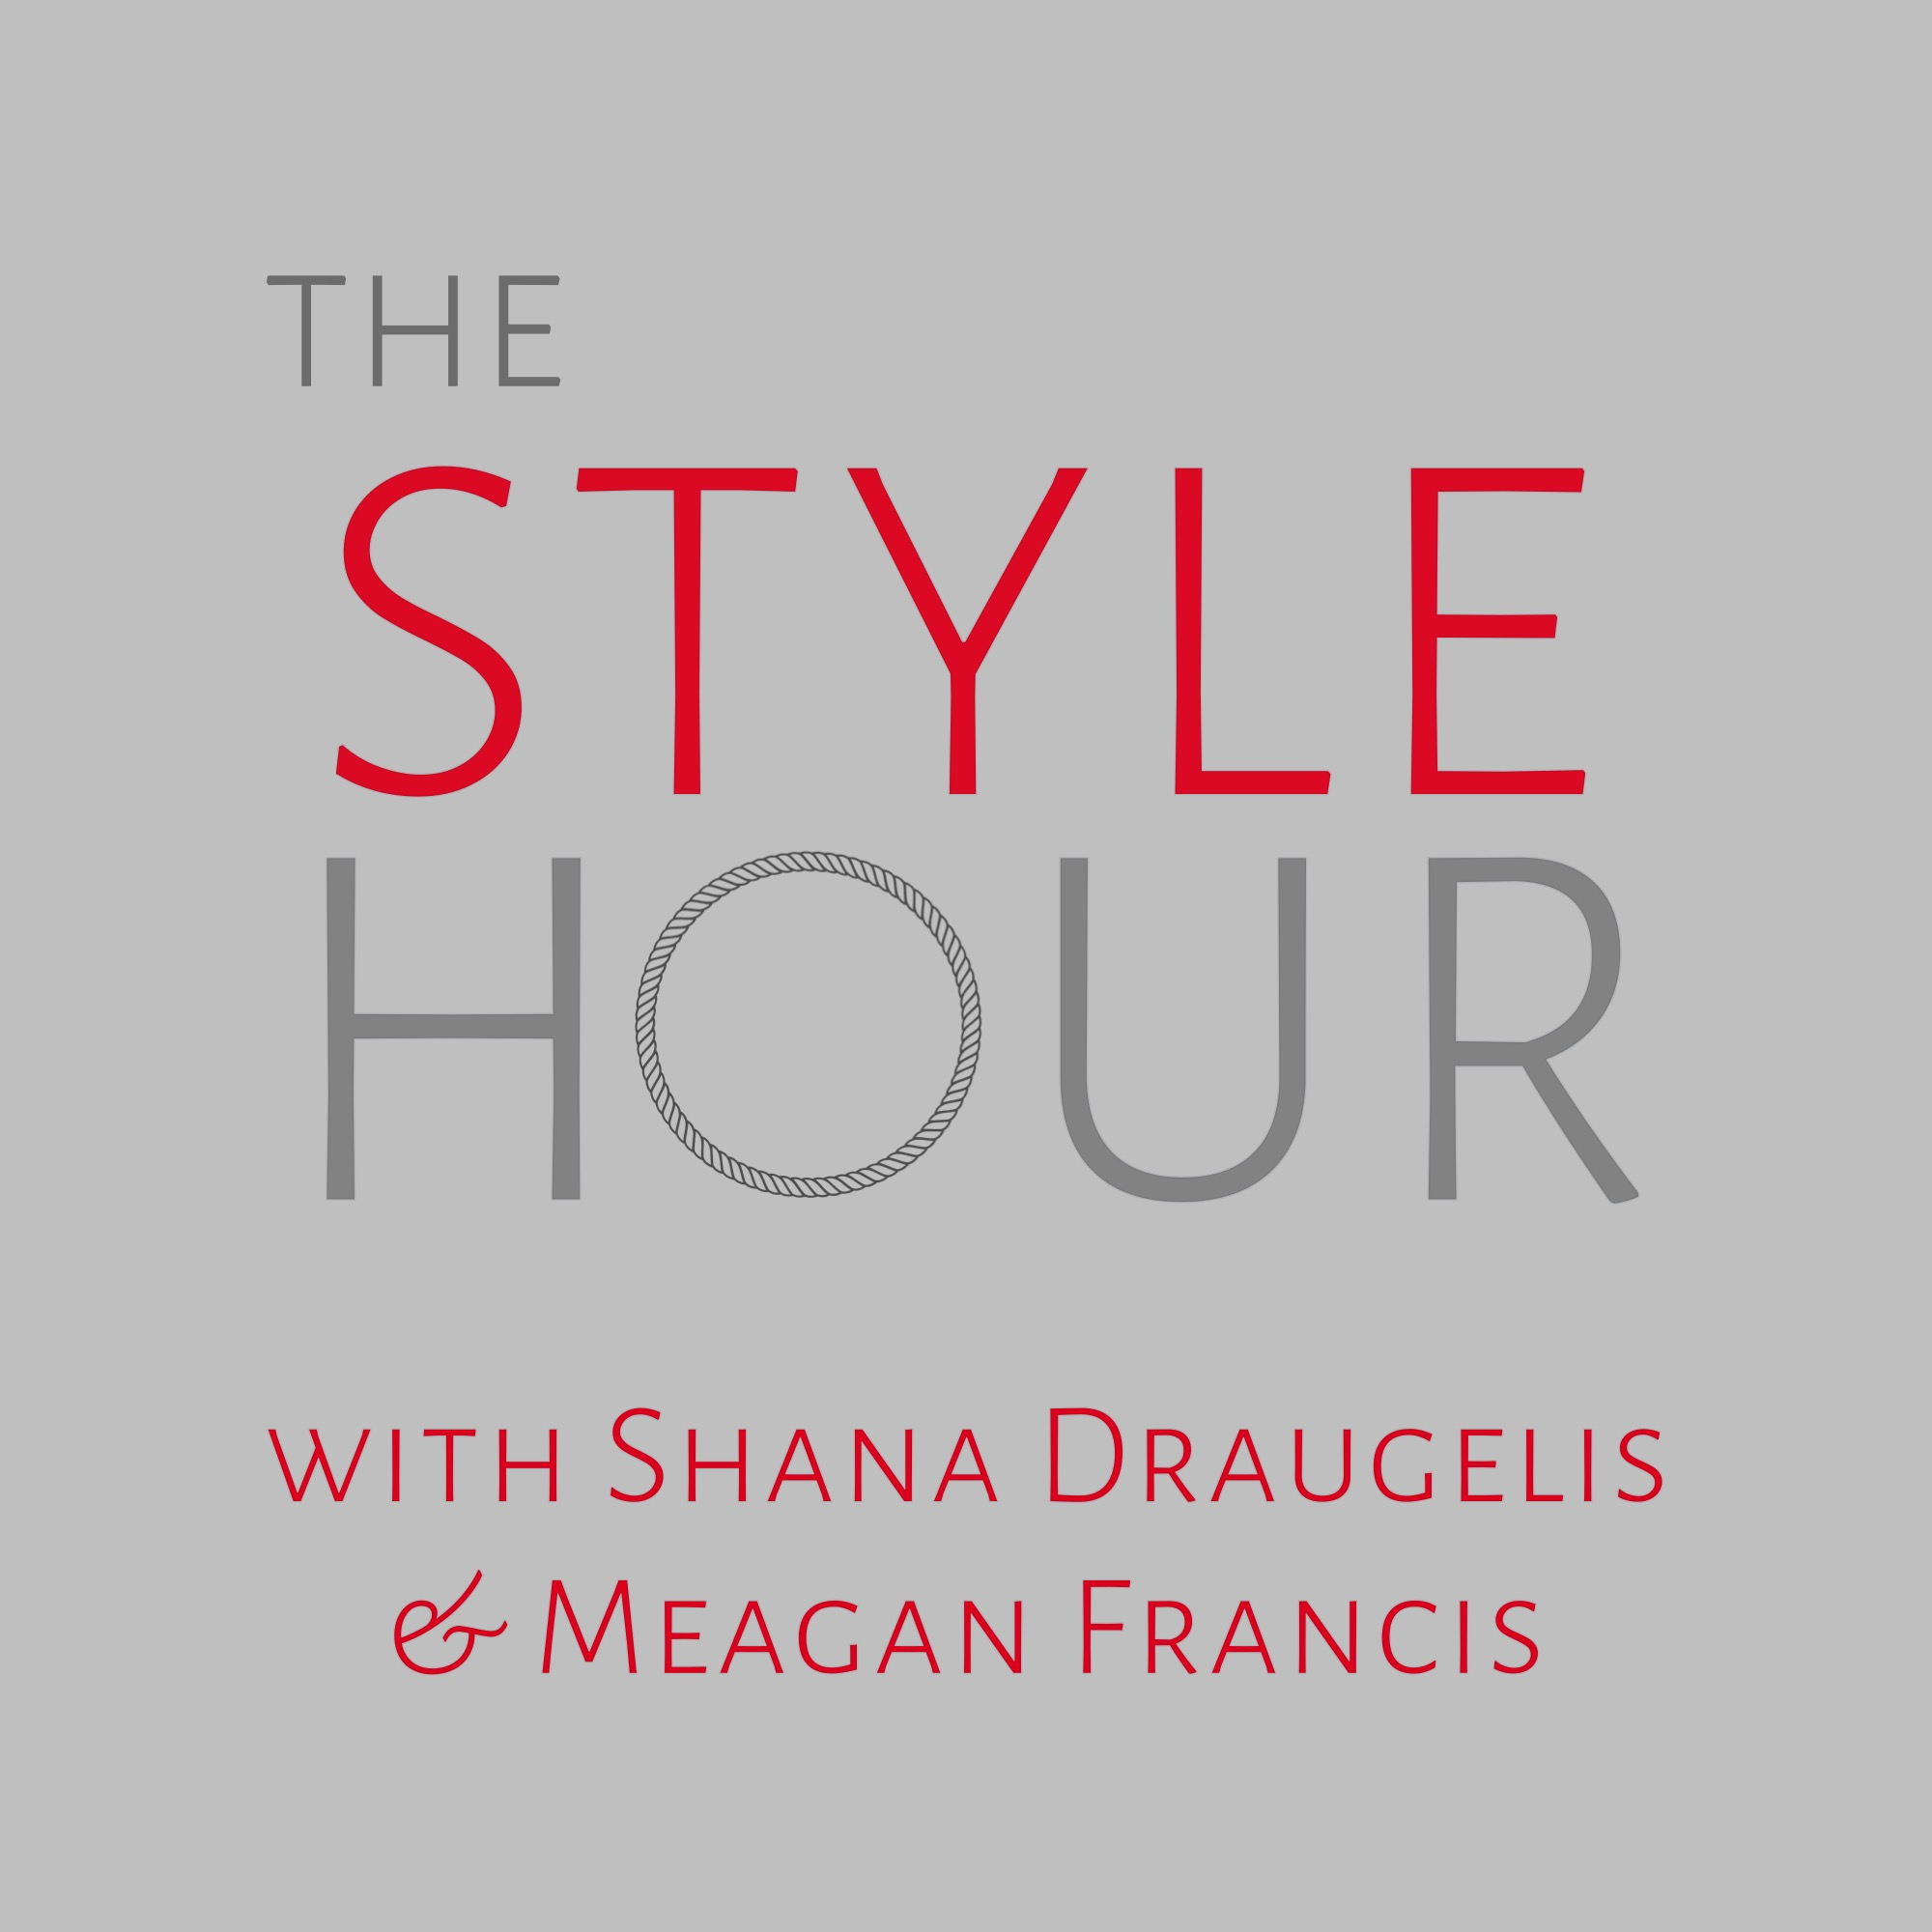 The Style Hour with Shana Draugelis